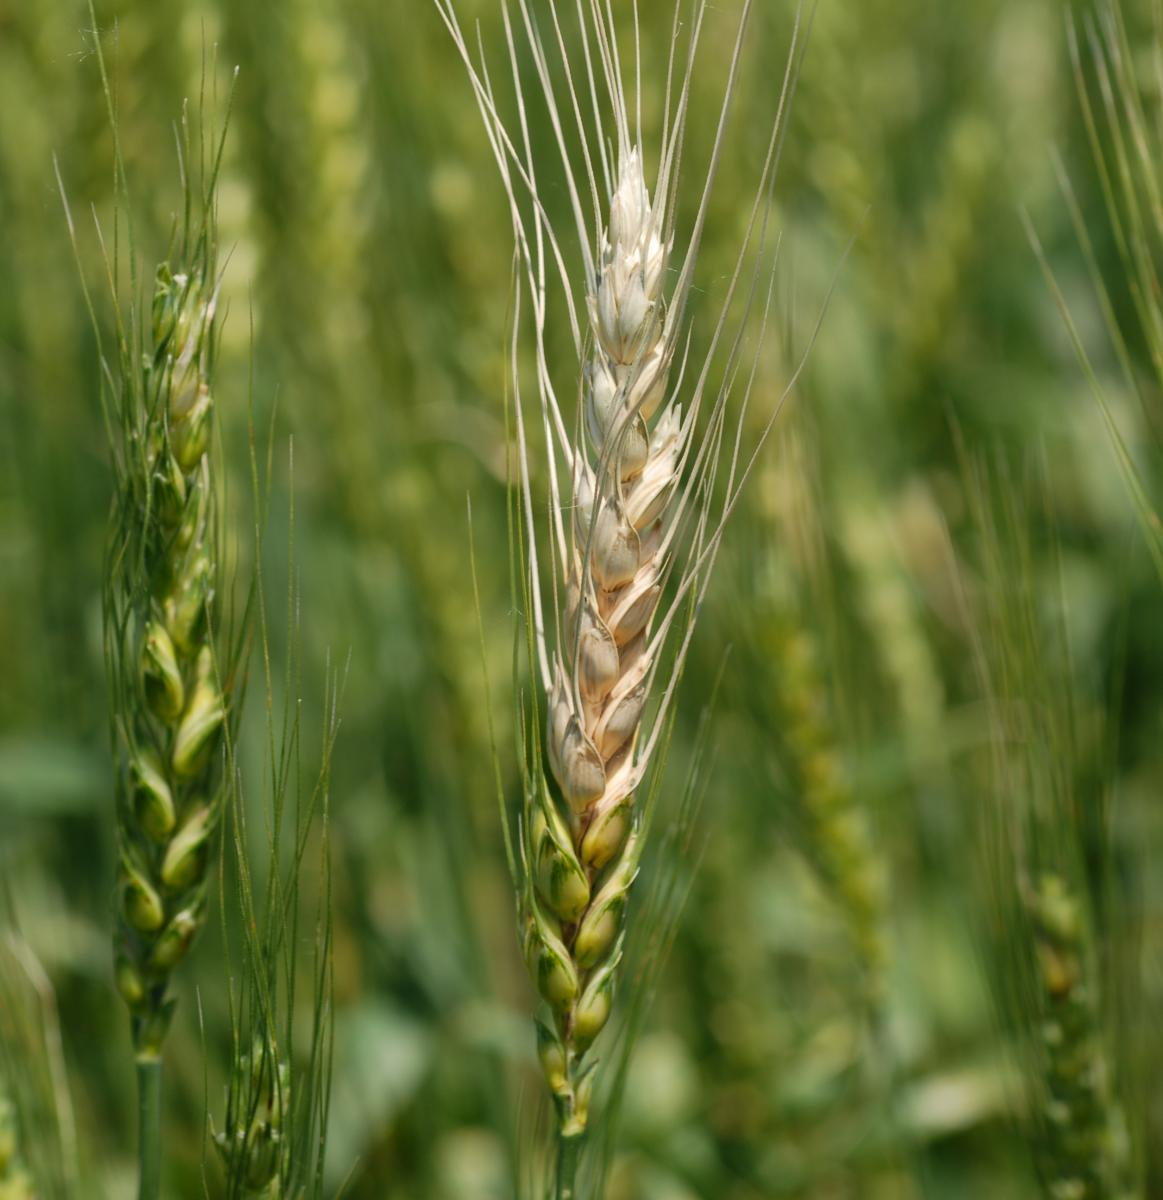 Fusarium head blight in wheat